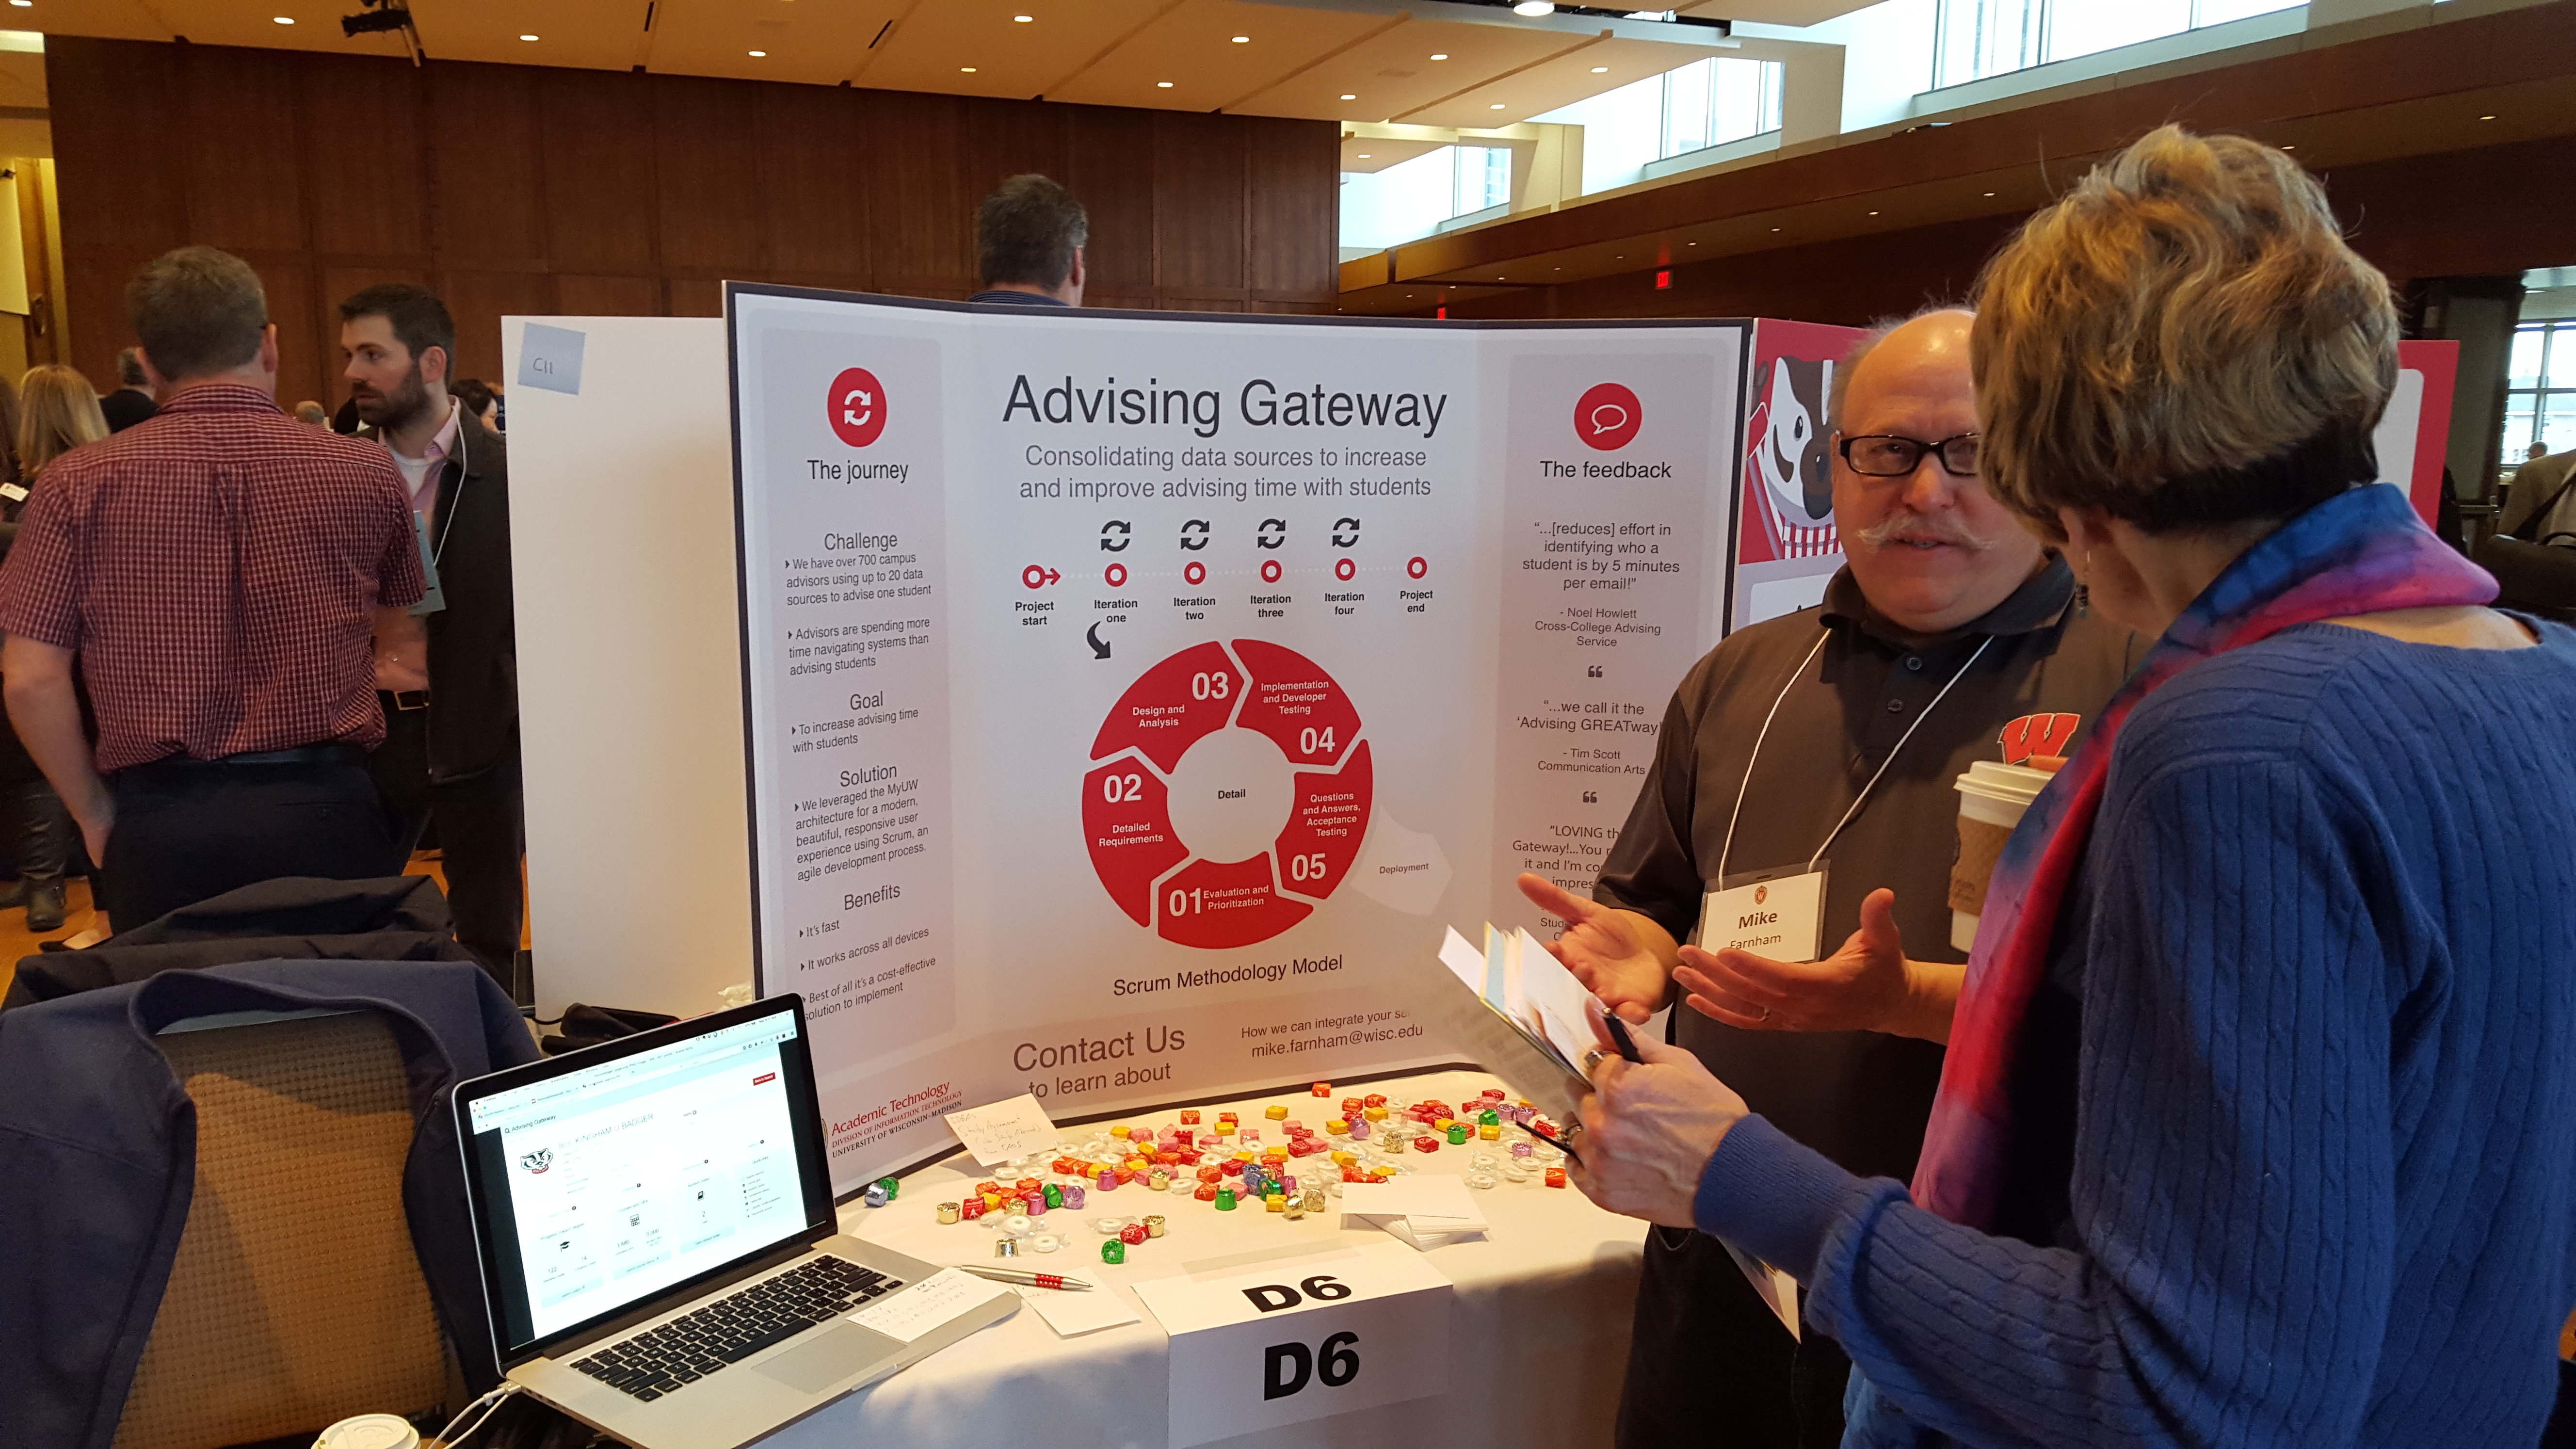 Mike Farnham walks a guest through the Scrum methodology and new features of the Advising Gateway